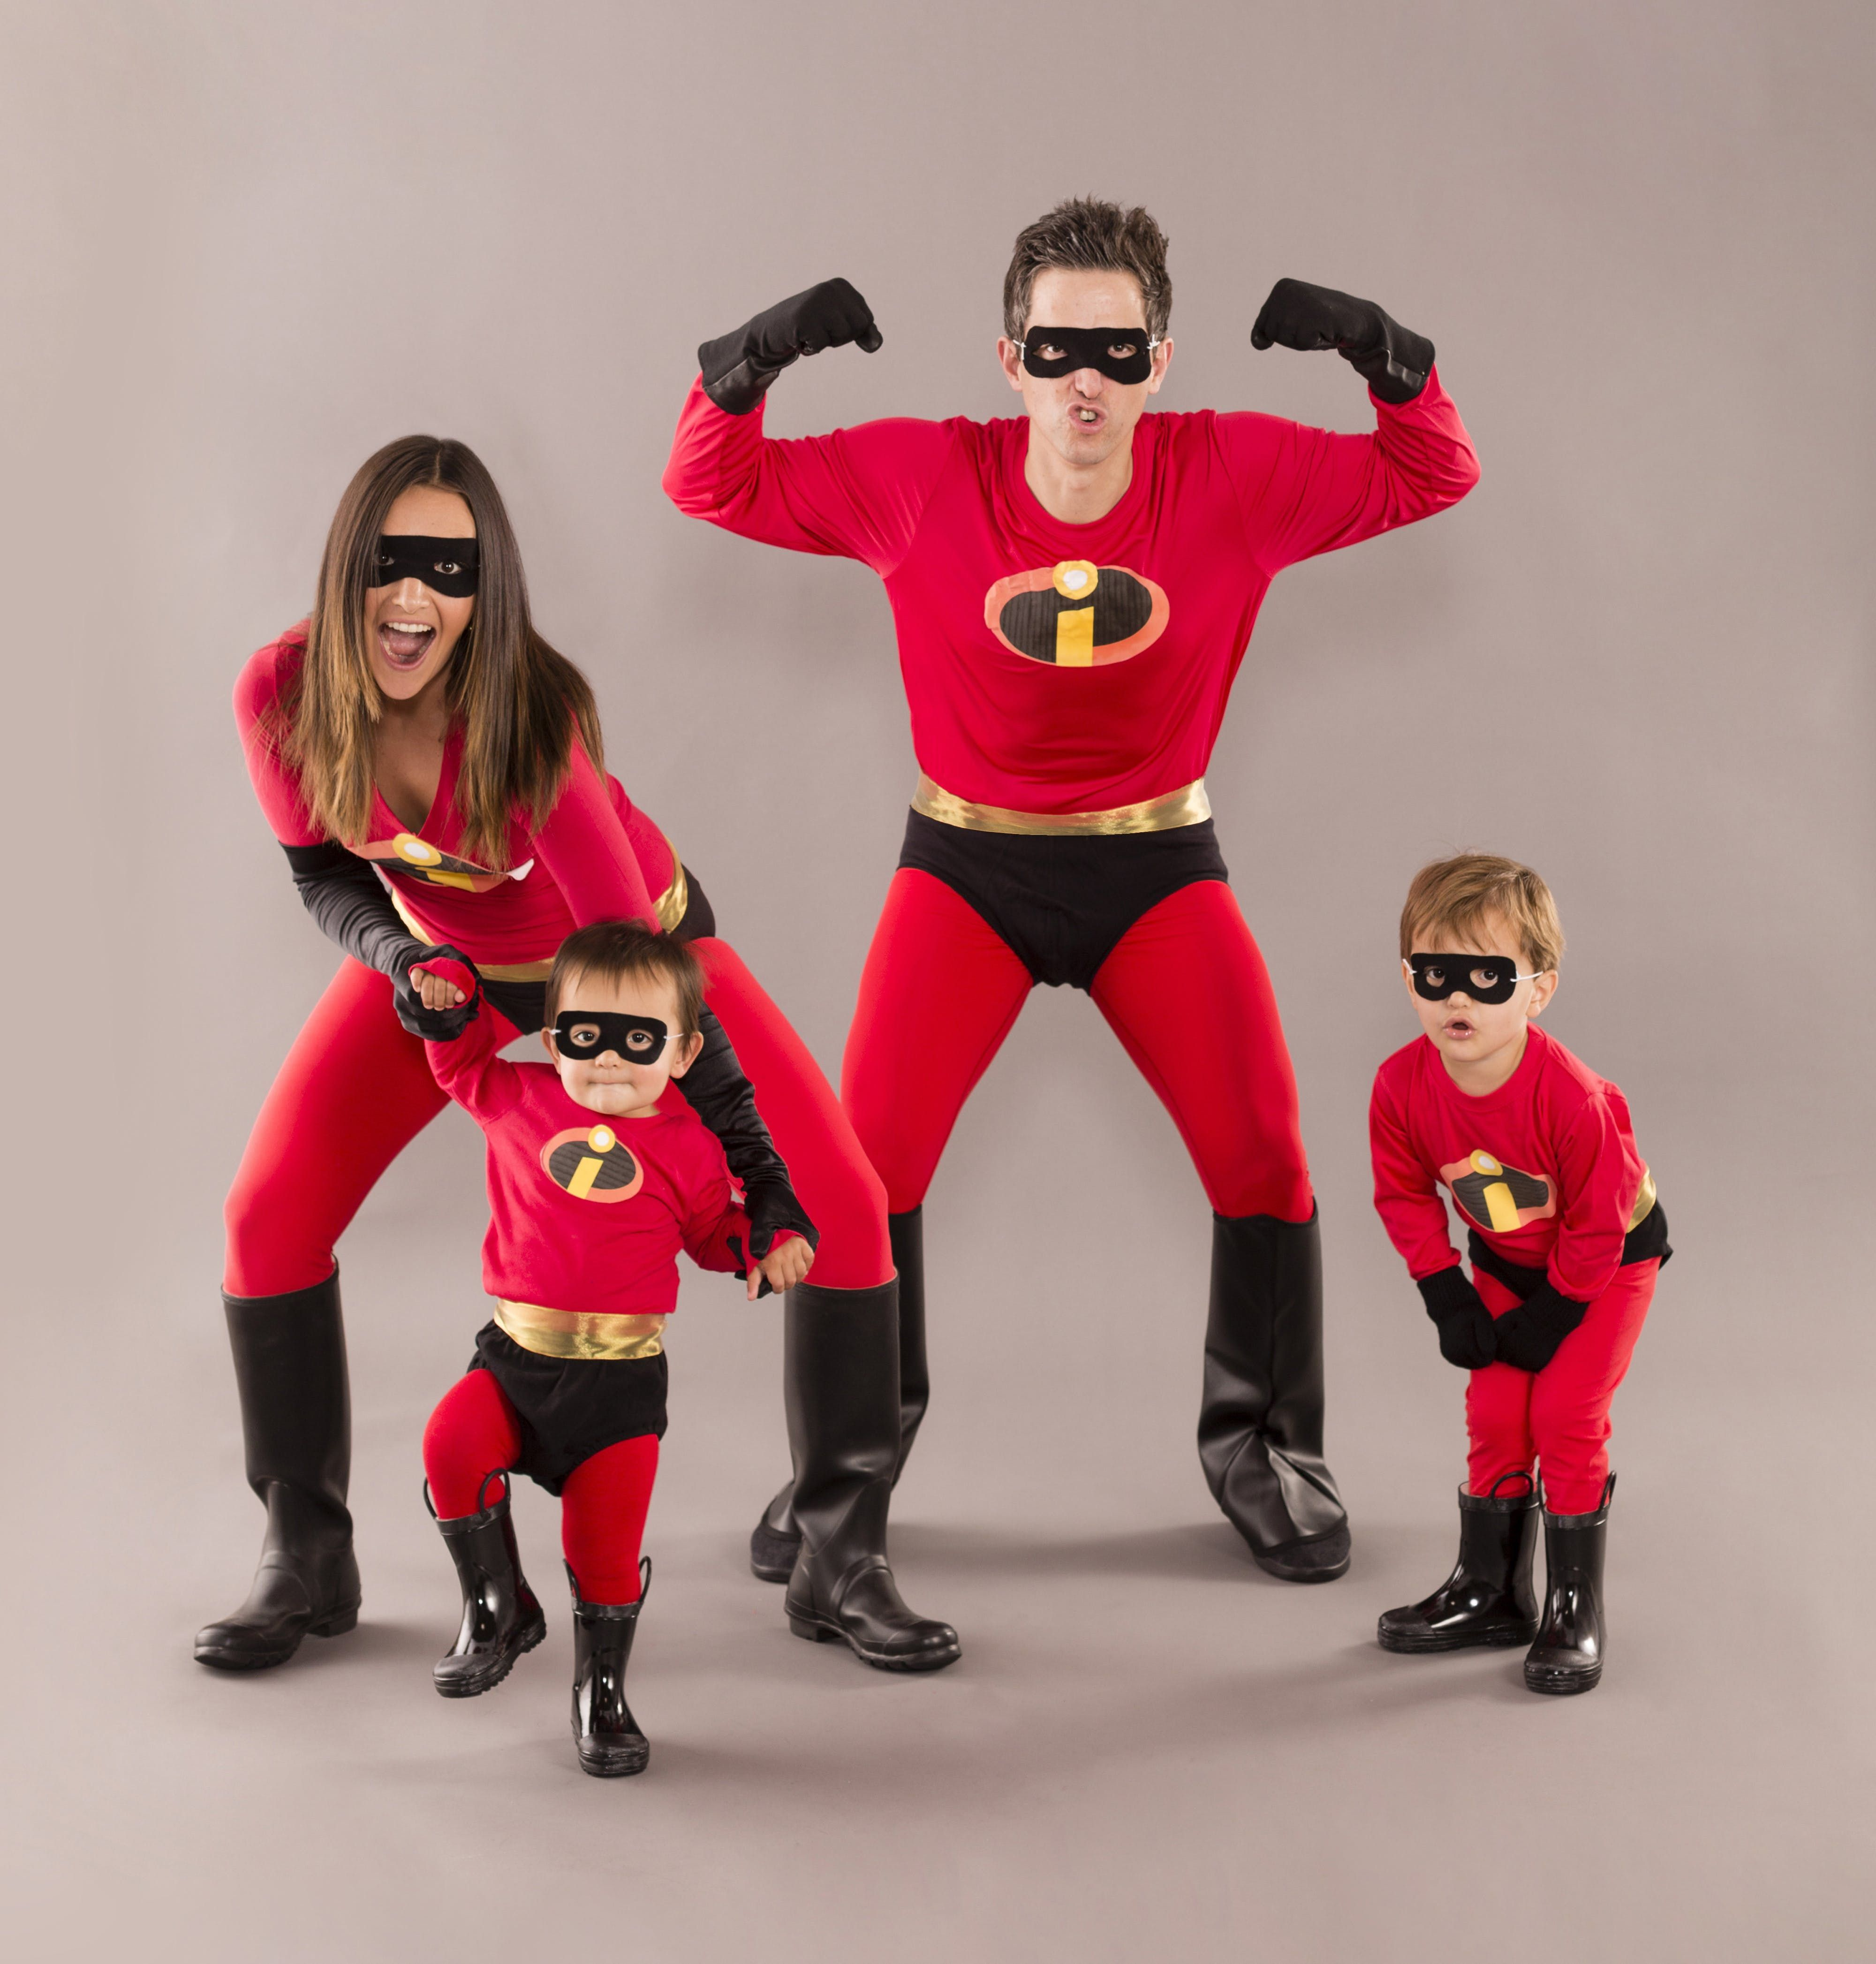 52 Clever Family Halloween Costume Ideas Family Halloween Costumes Superhero Family Costumes Super Hero Costumes